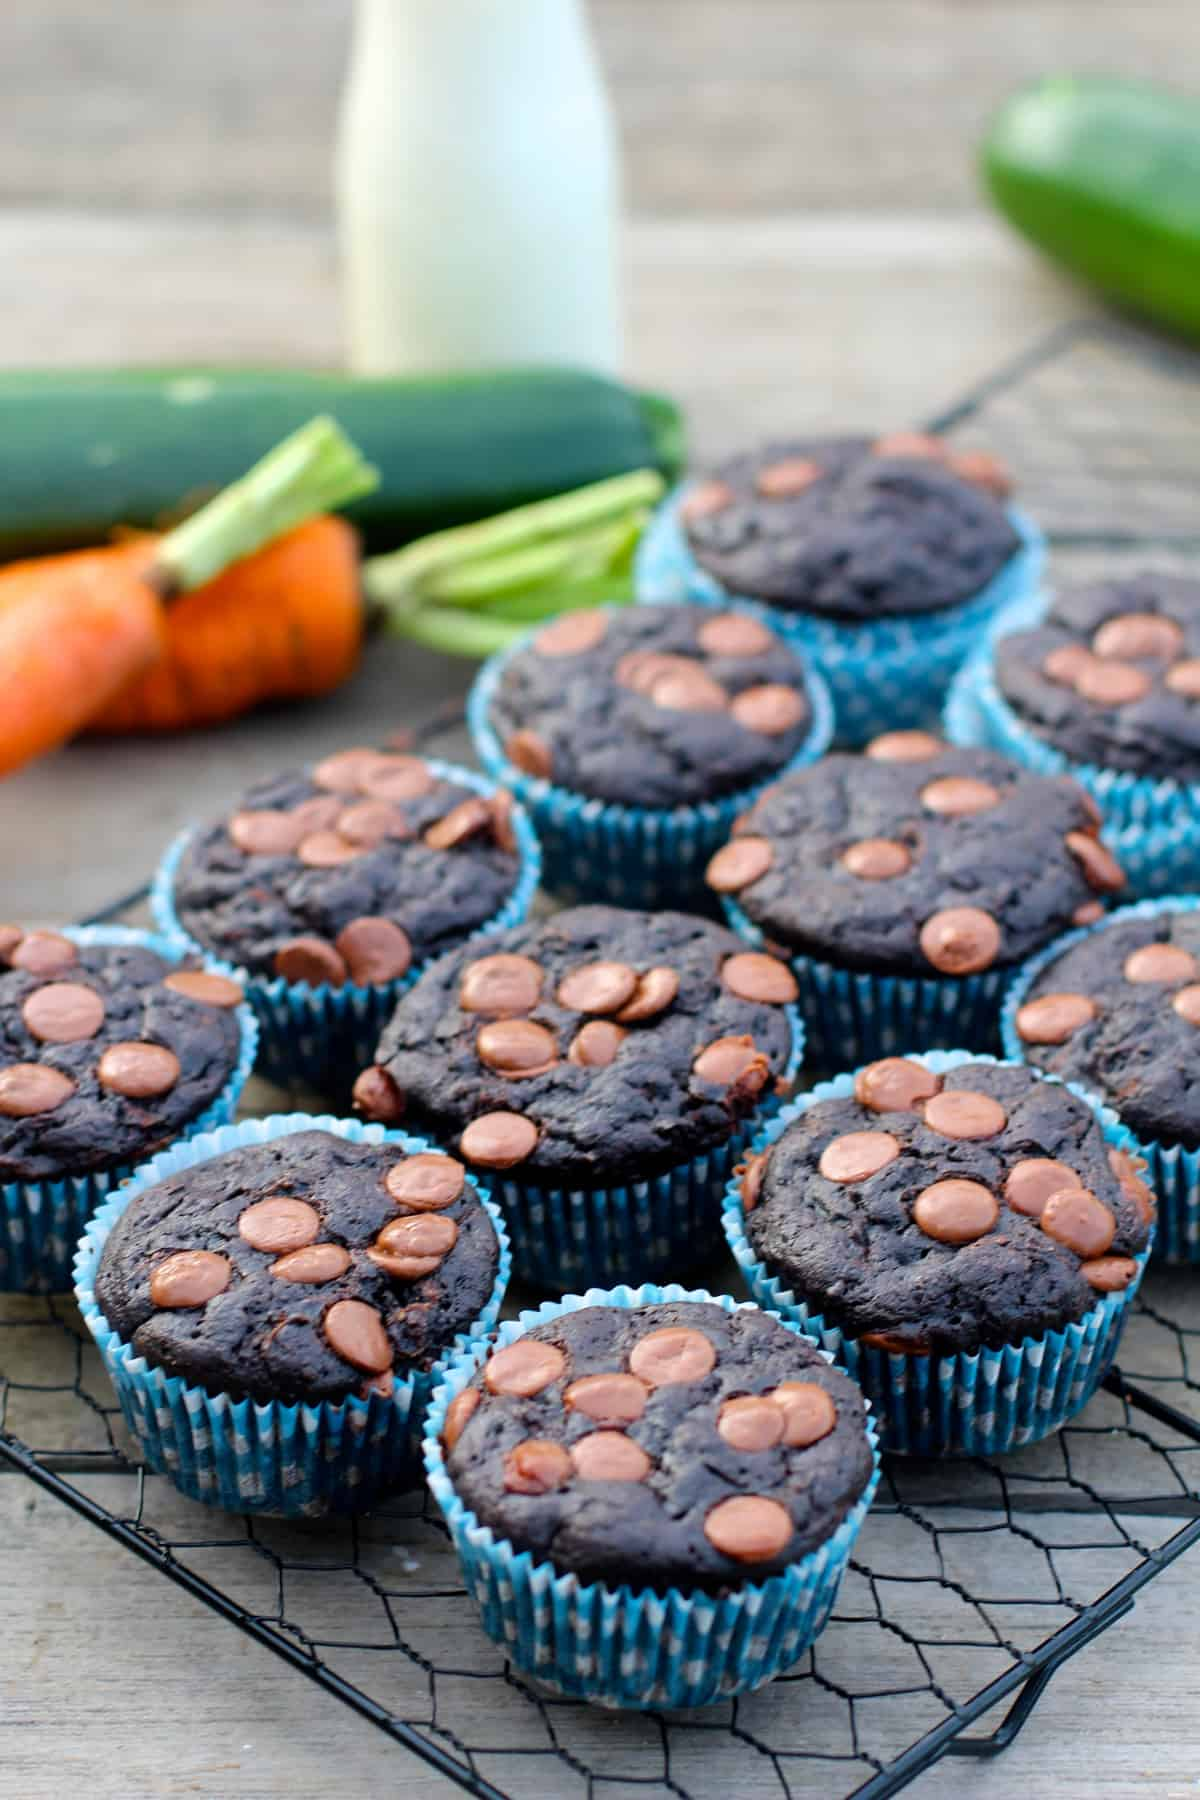 Healthy Carrot Zucchini Chocolate Muffins